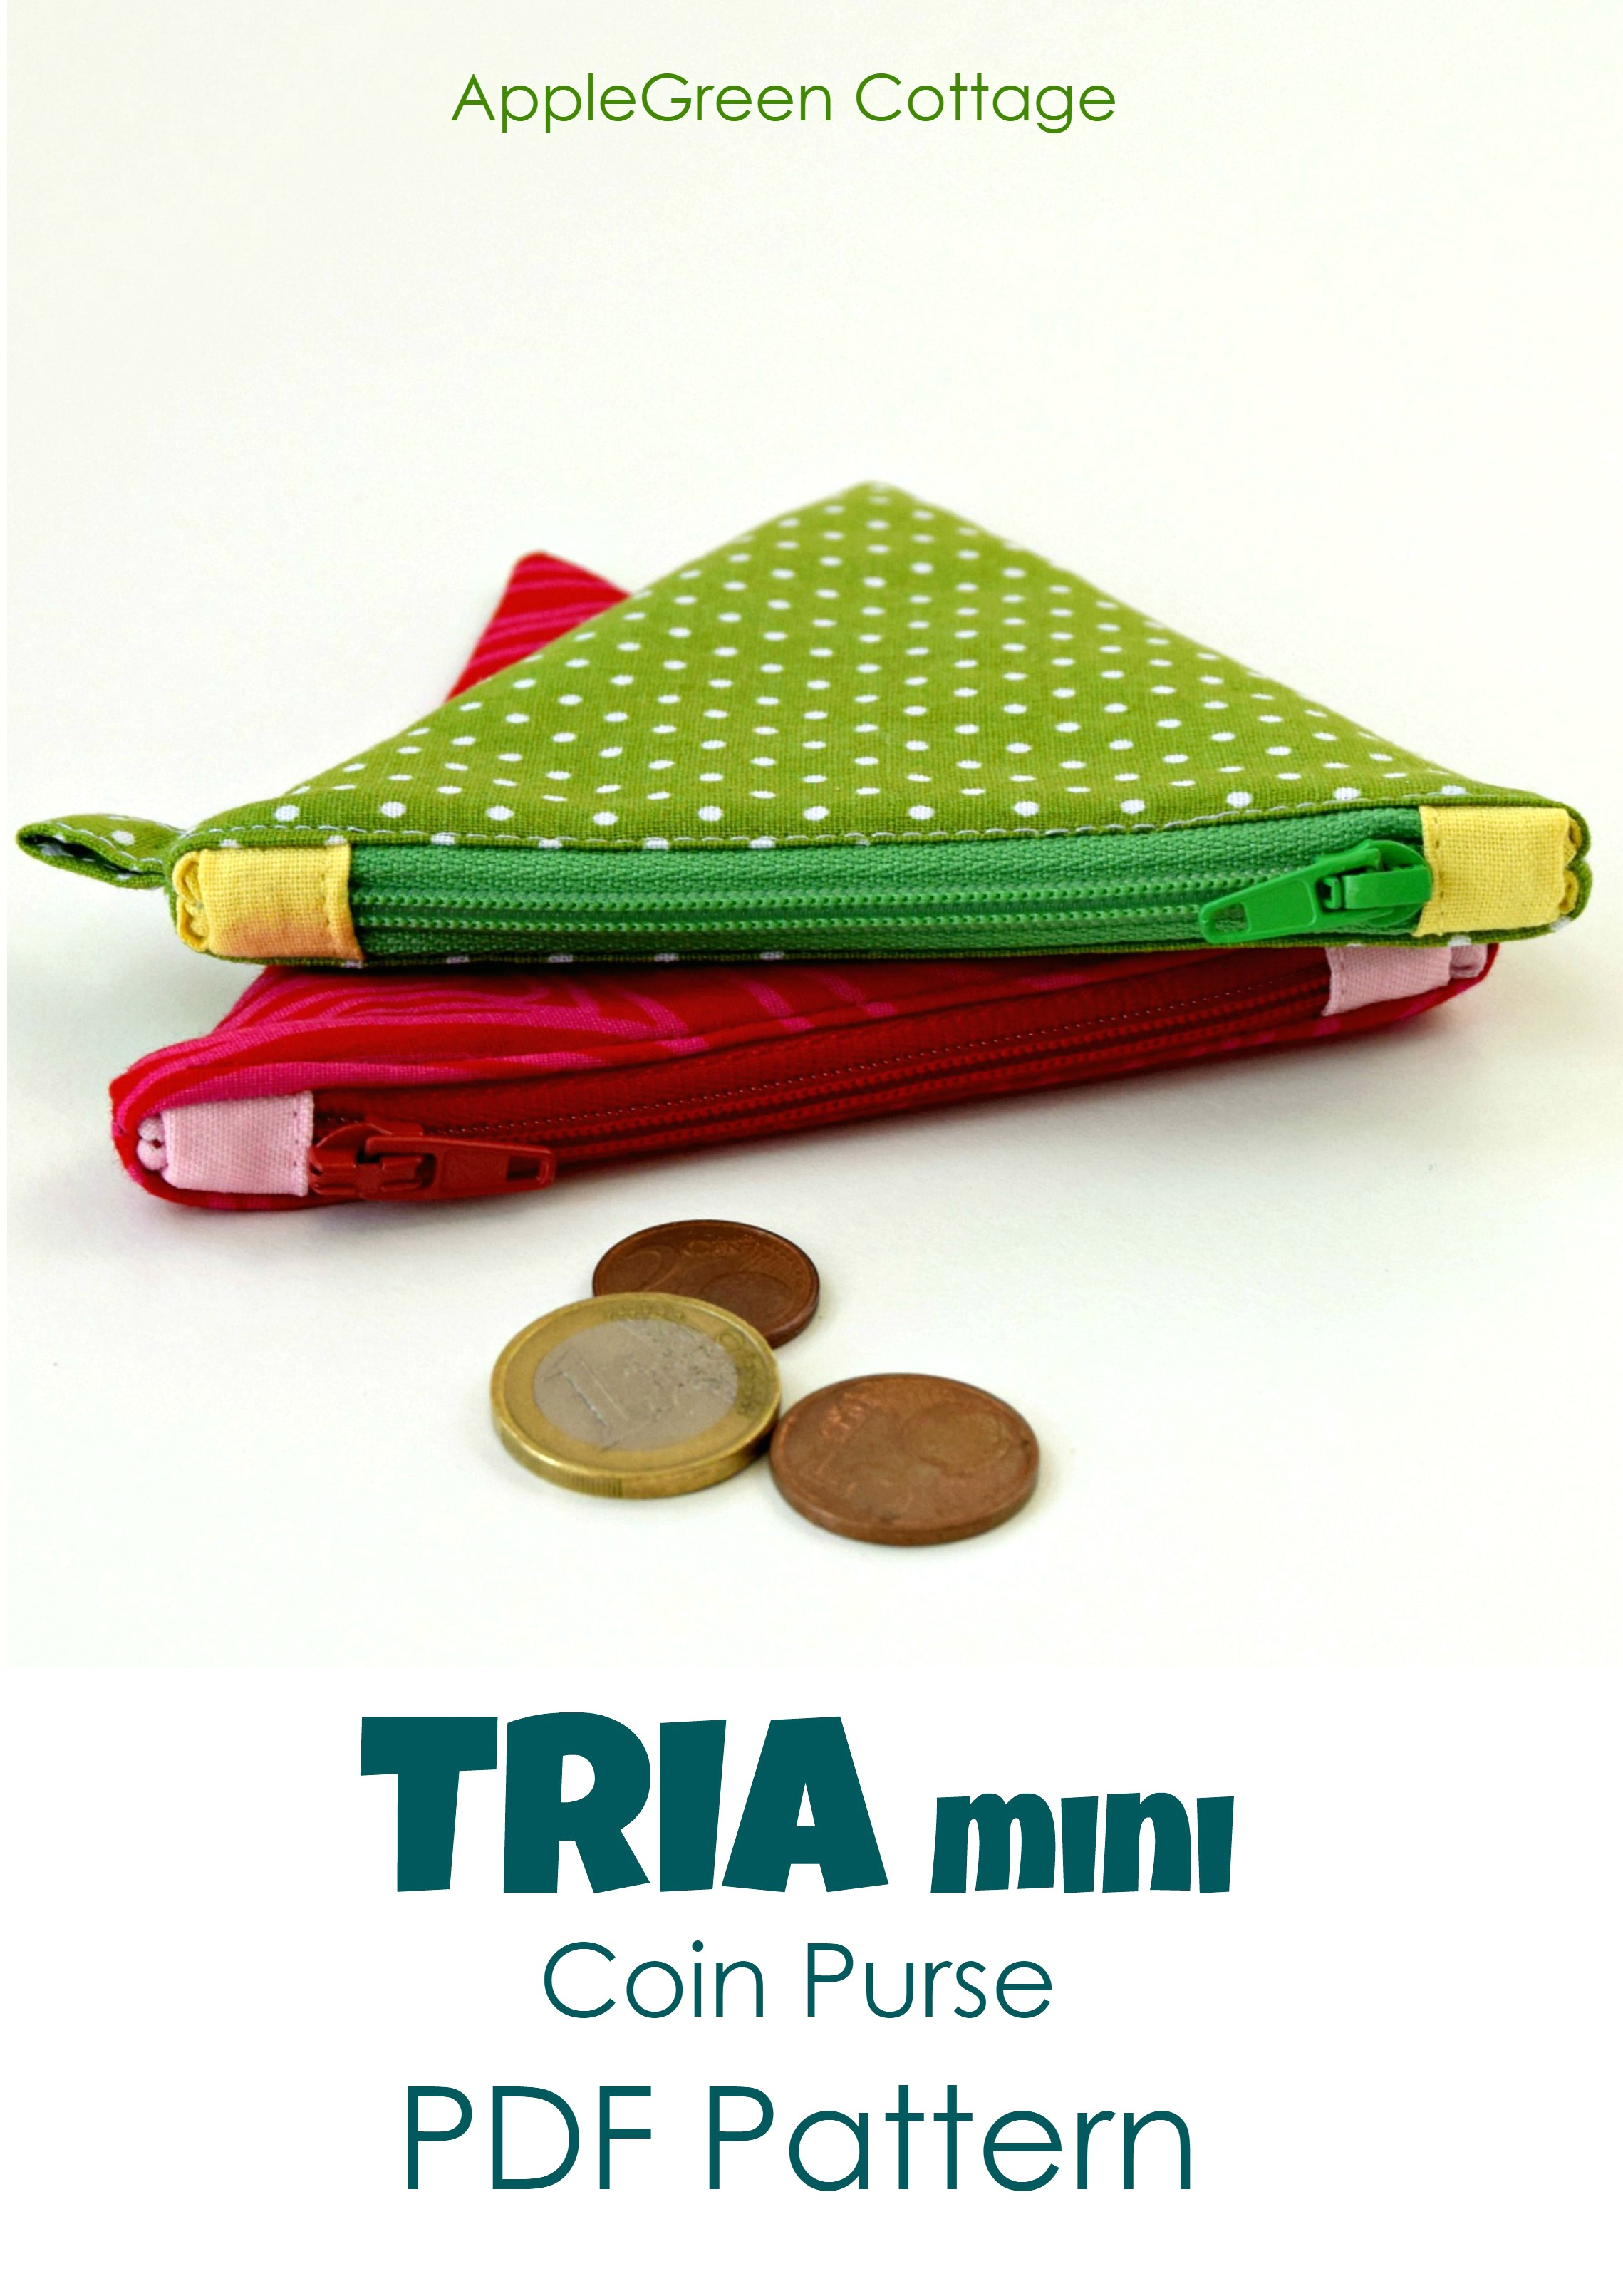 TRIA Mini Coin Purse - PDF Sewing Pattern and detailed instructions